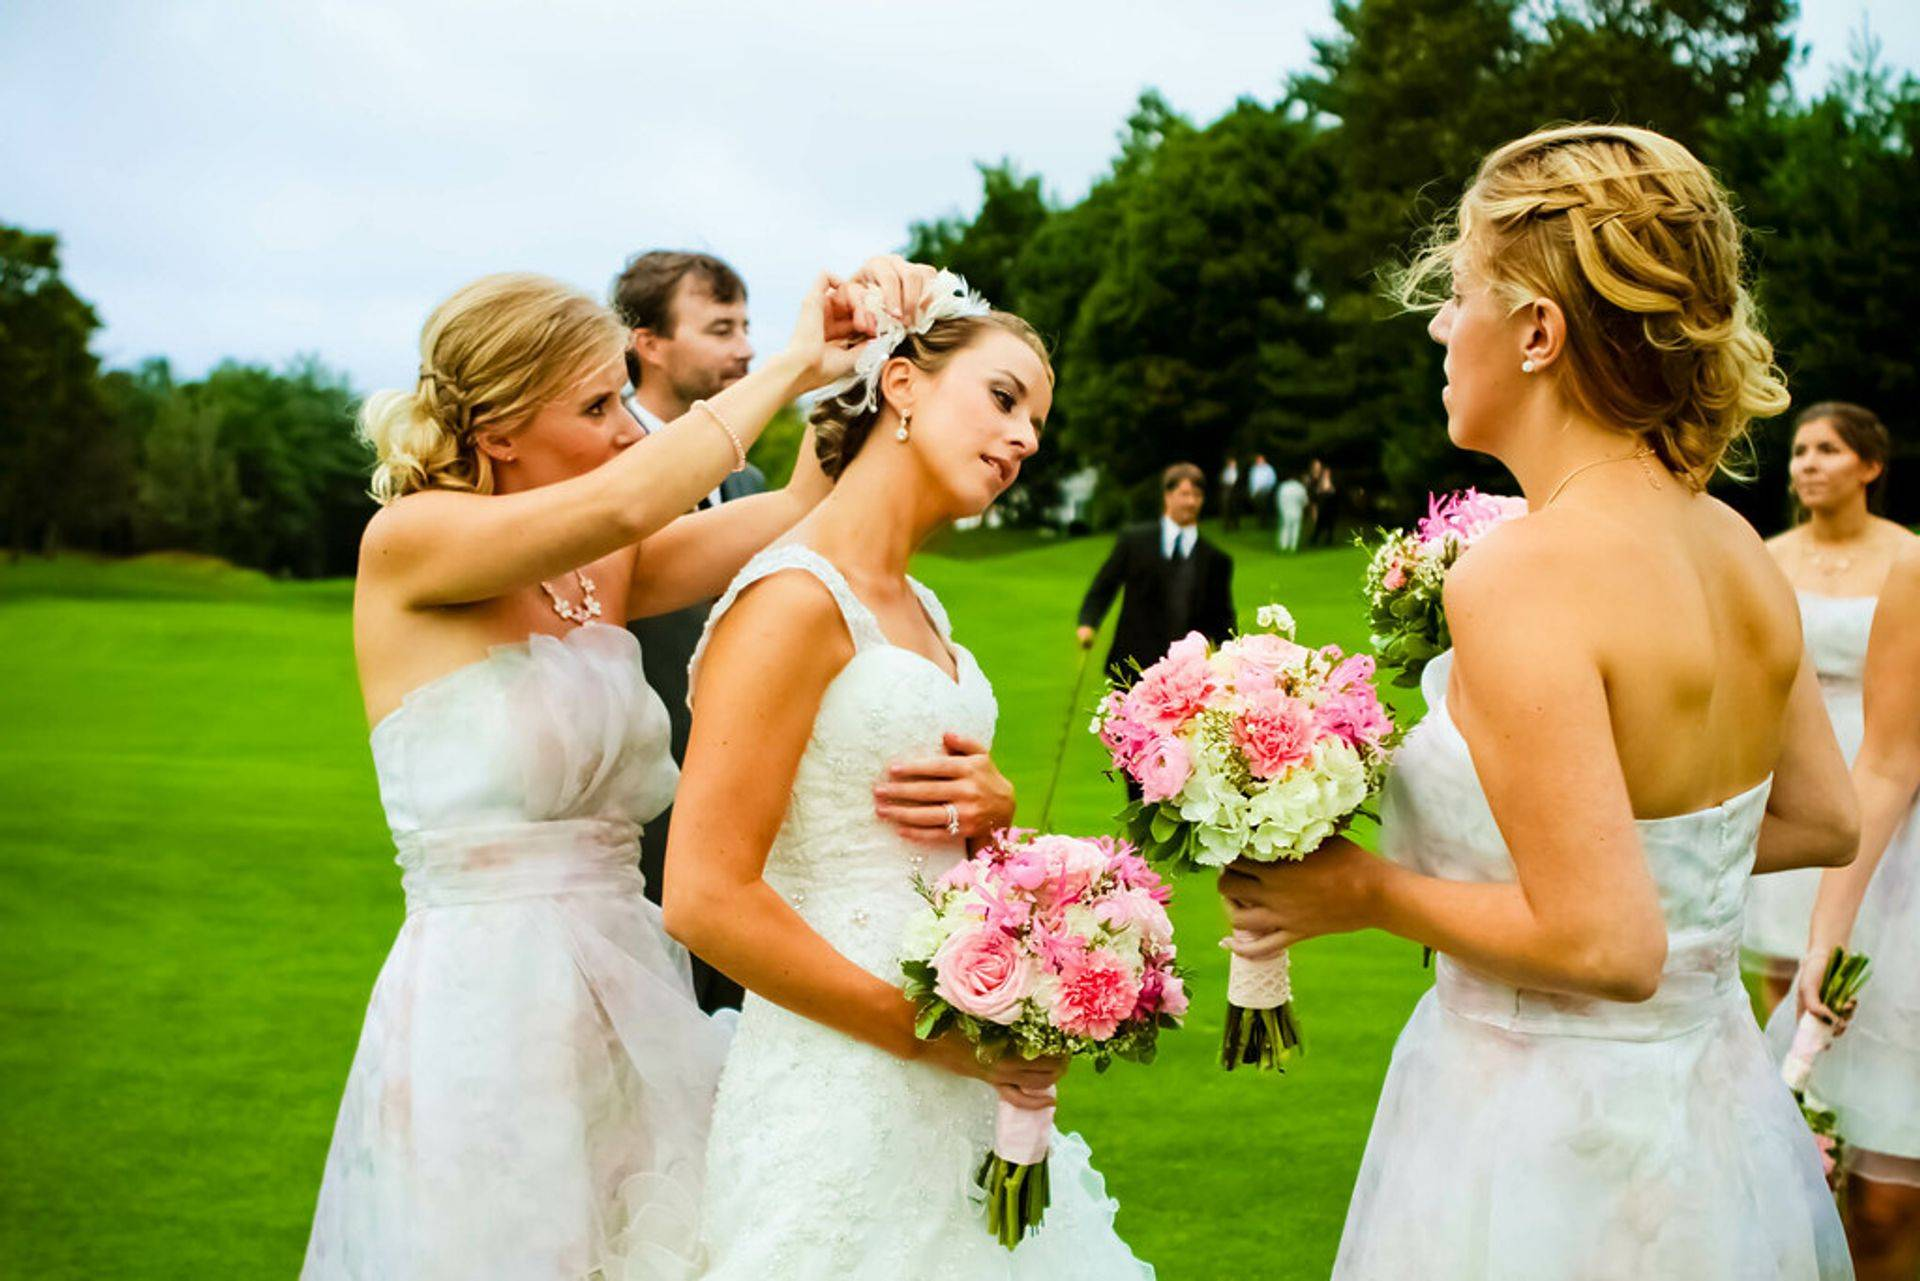 Bridesmaids, Wedding Marketing Solutions, Wedding Marketing Solutions New Jersey